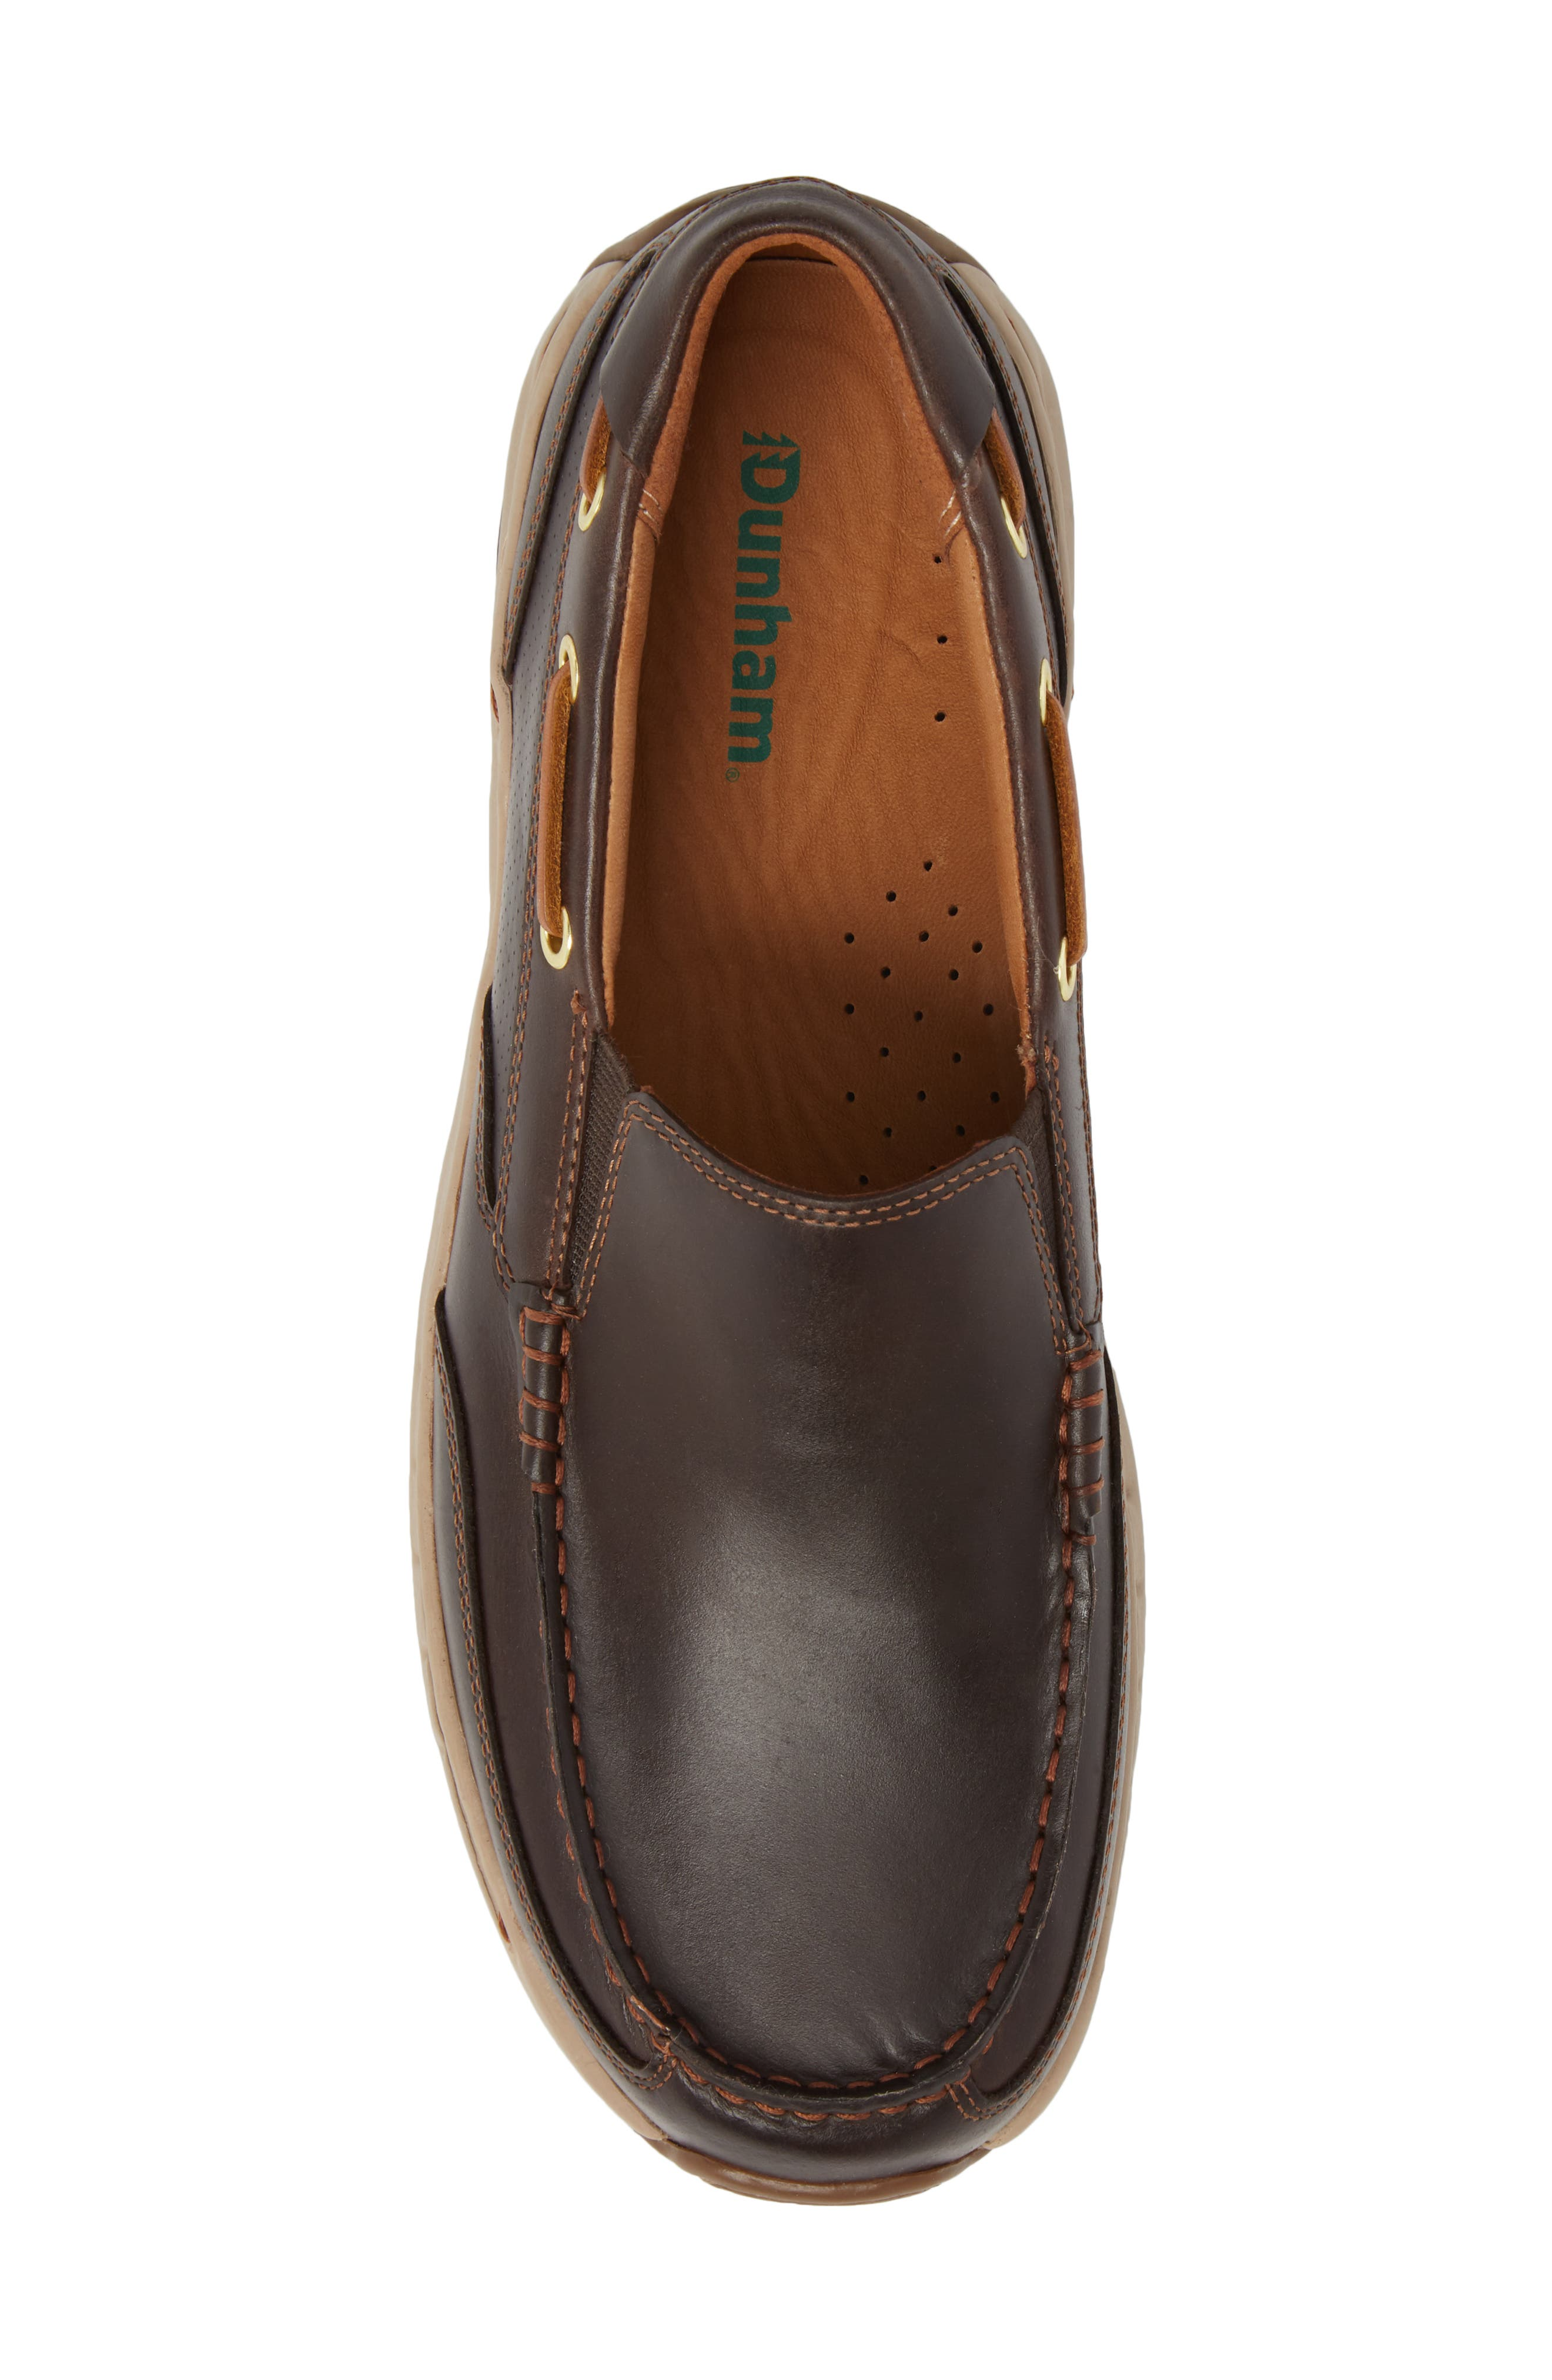 DUNHAM, Waterford Water Resistant Slip-On, Alternate thumbnail 5, color, TAN LEATHER